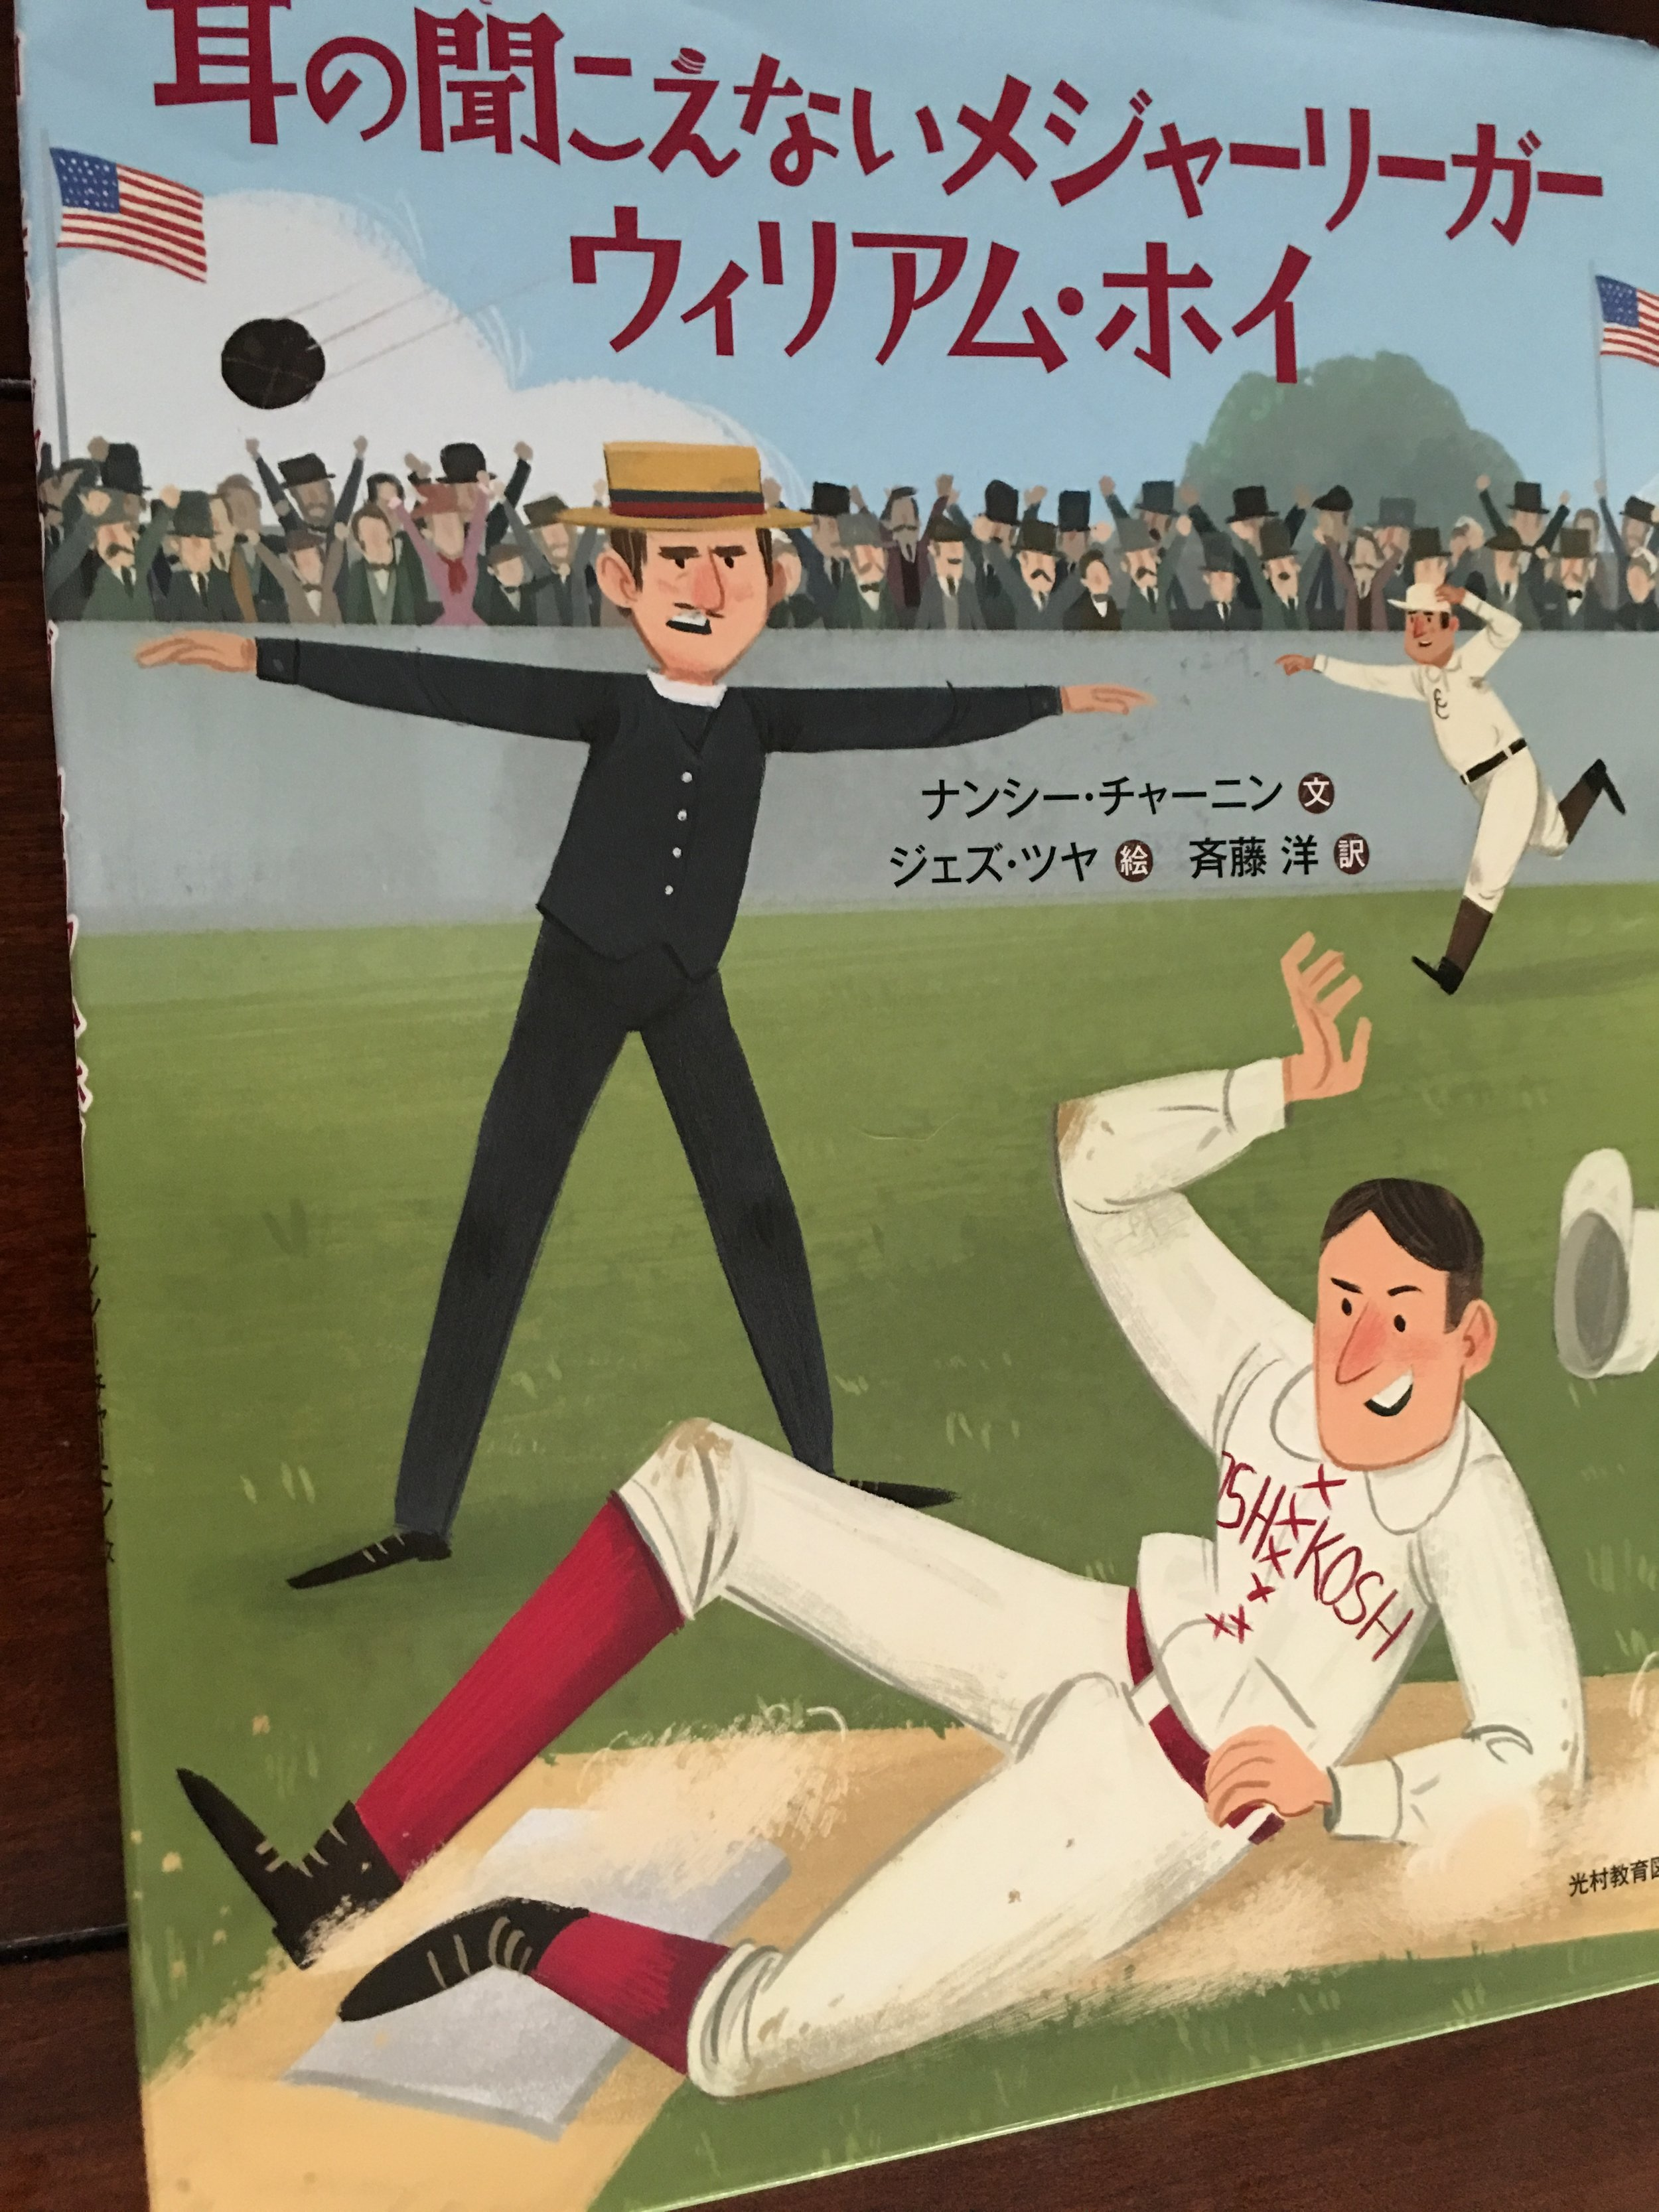 Available in Japanese!